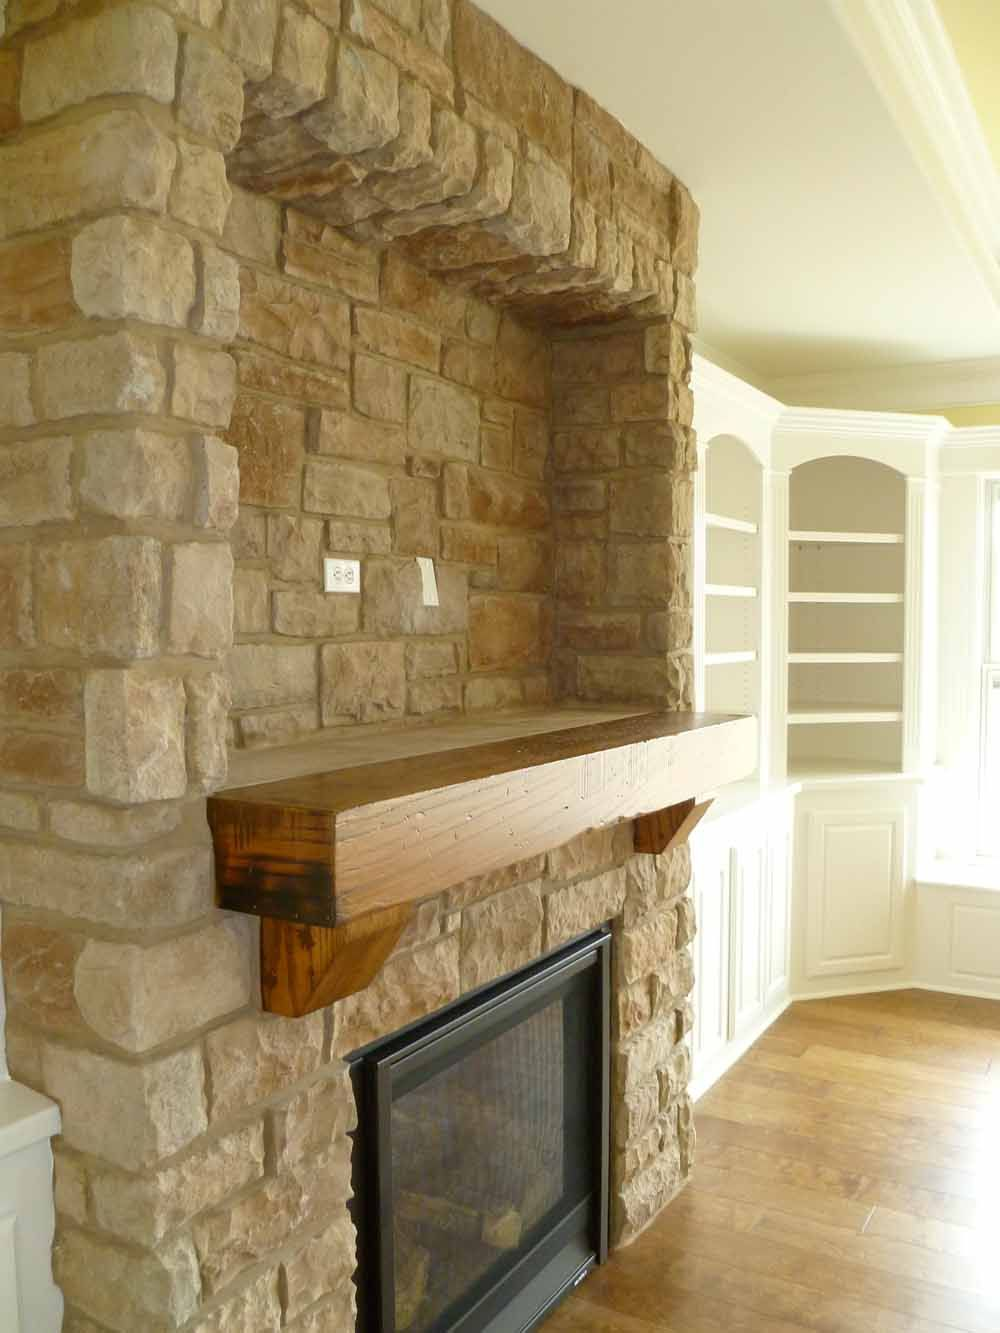 fireplace-fronts | Custom Homes by Tompkins Homes and Development & fireplace-fronts | Custom Homes by Tompkins Homes and Development ...